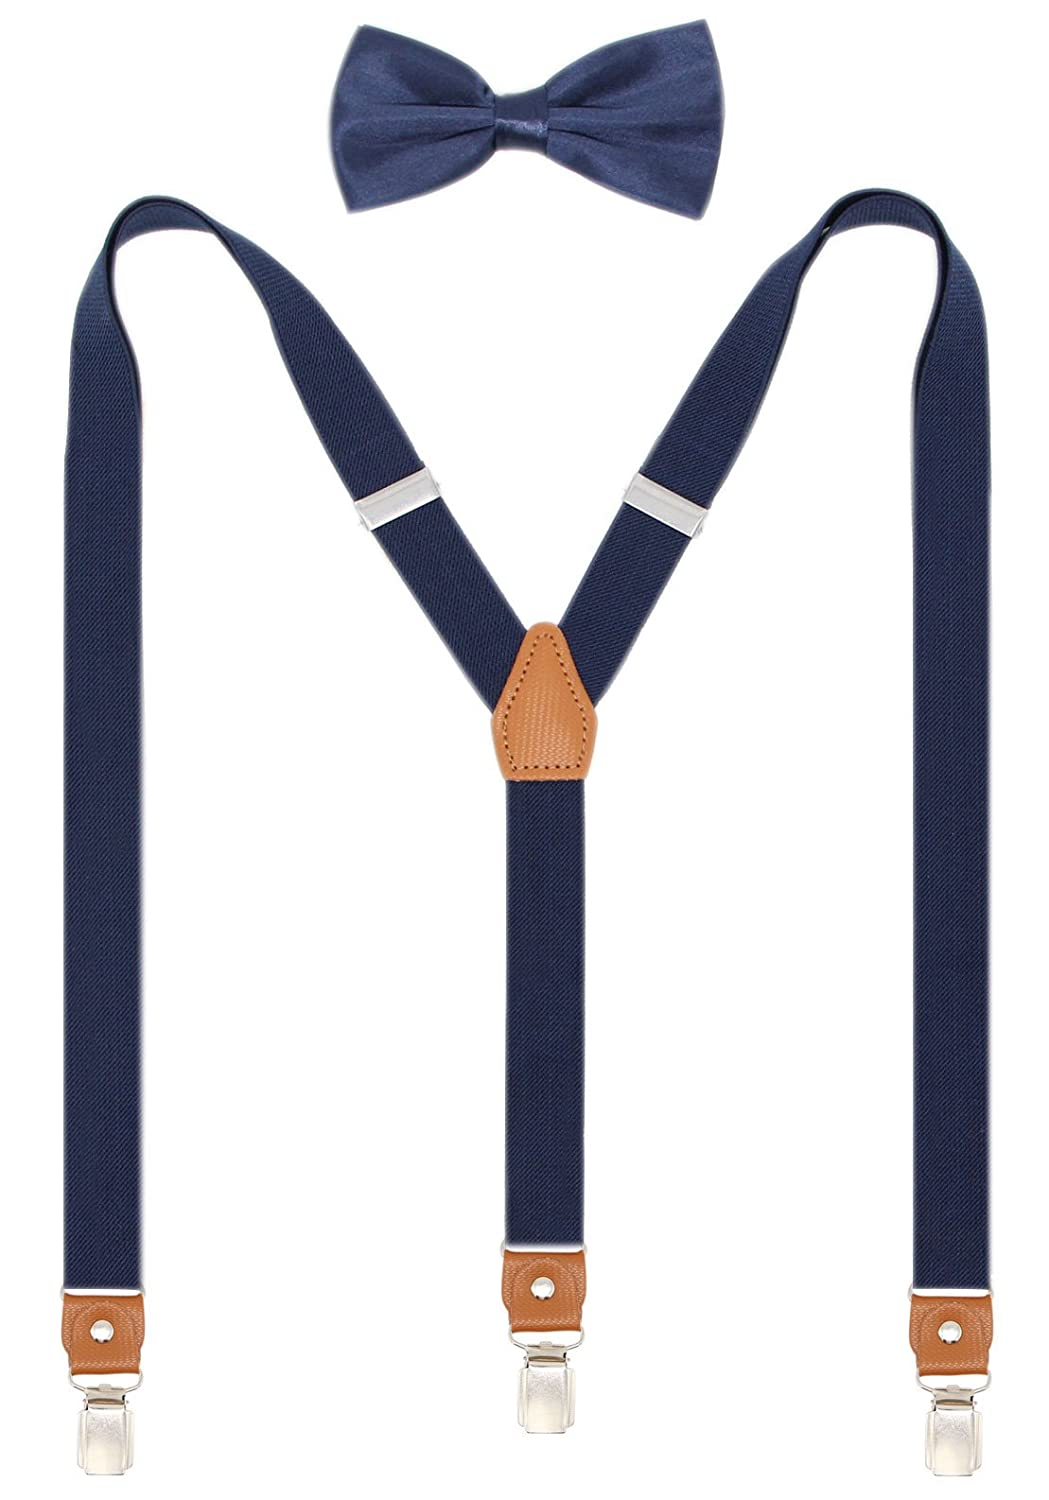 Suspenders and Pre Tied Bow Tie For Men Y Shape Strong Clips Adjustable Braces